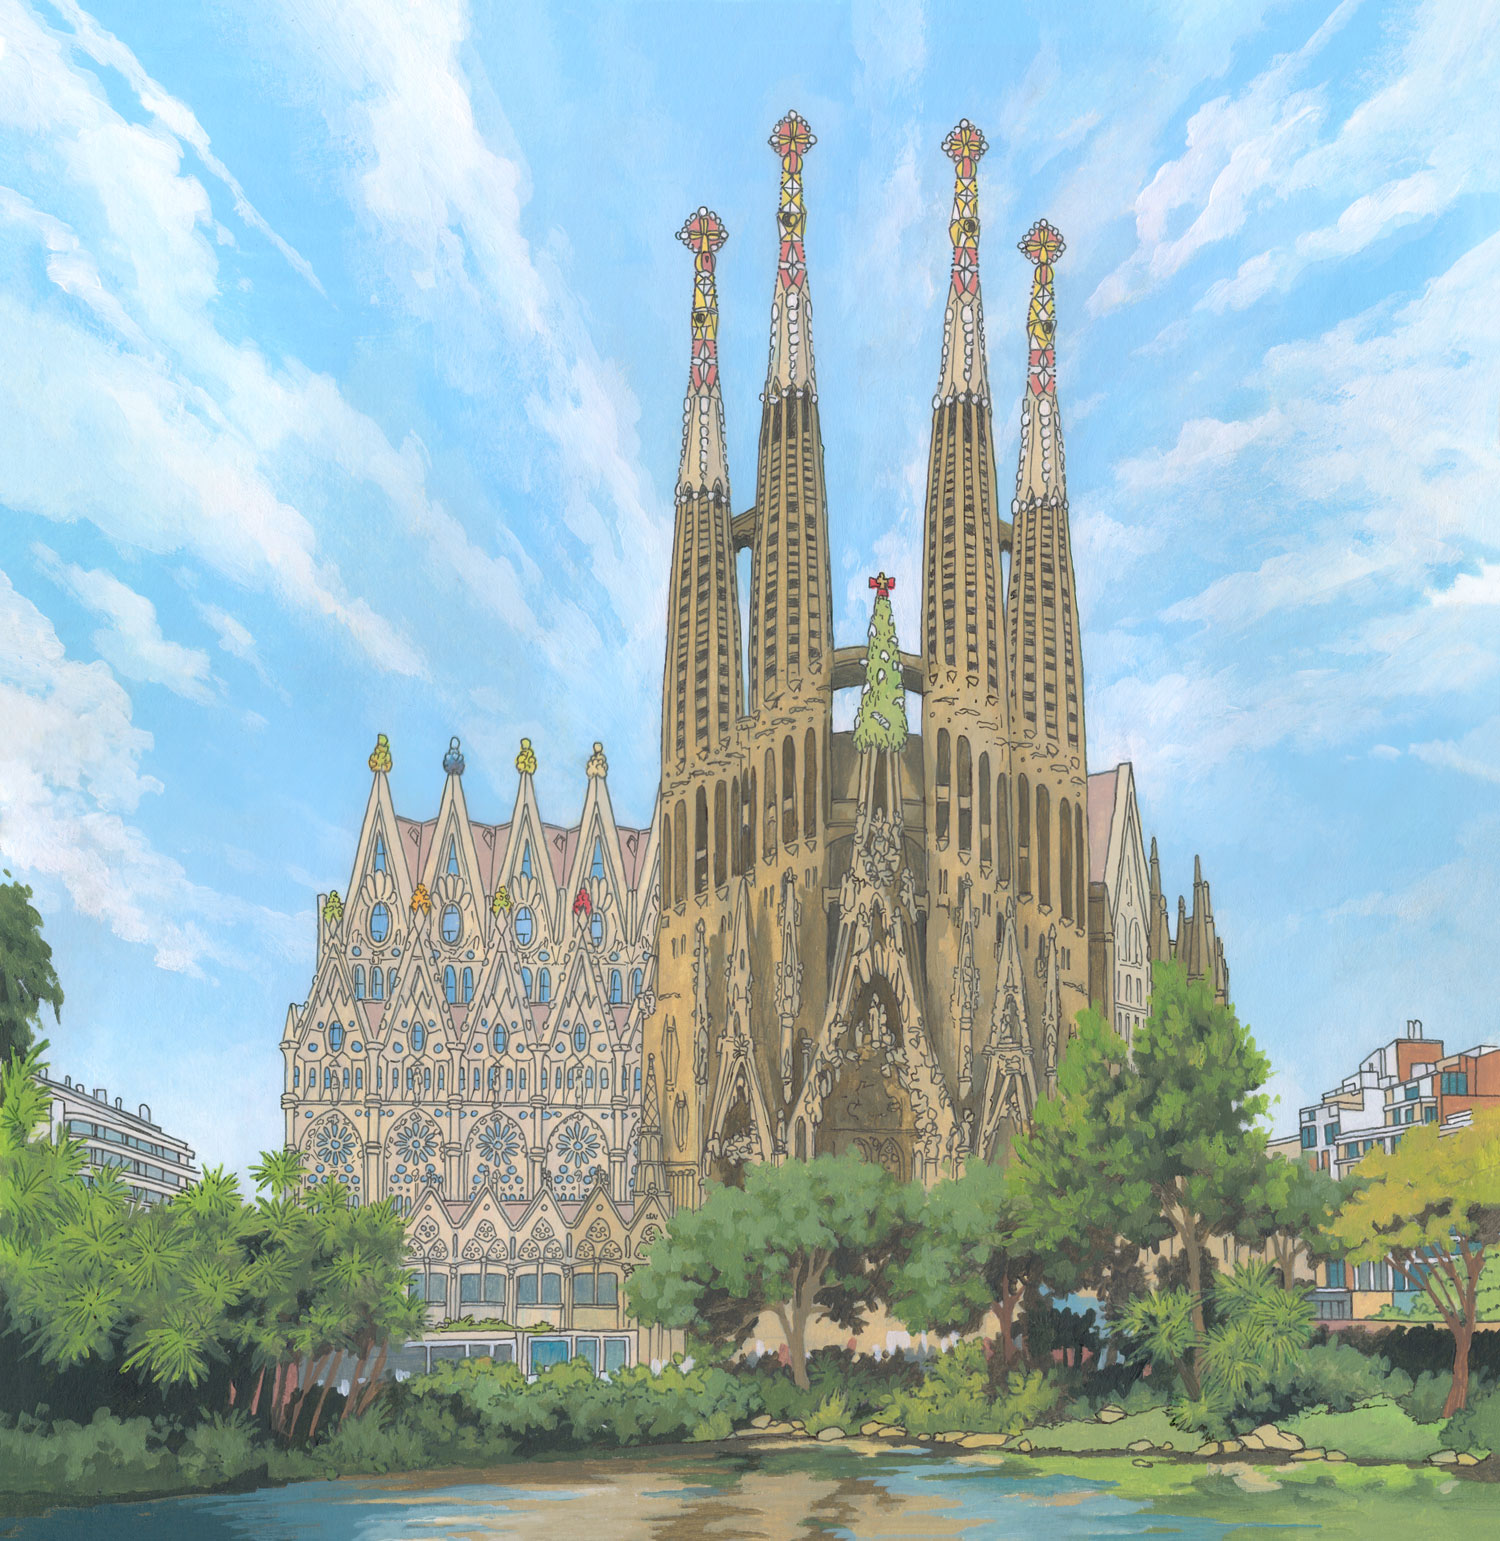 Sagrada Familia, Barcelona – Illustration by Jonathan Chapman